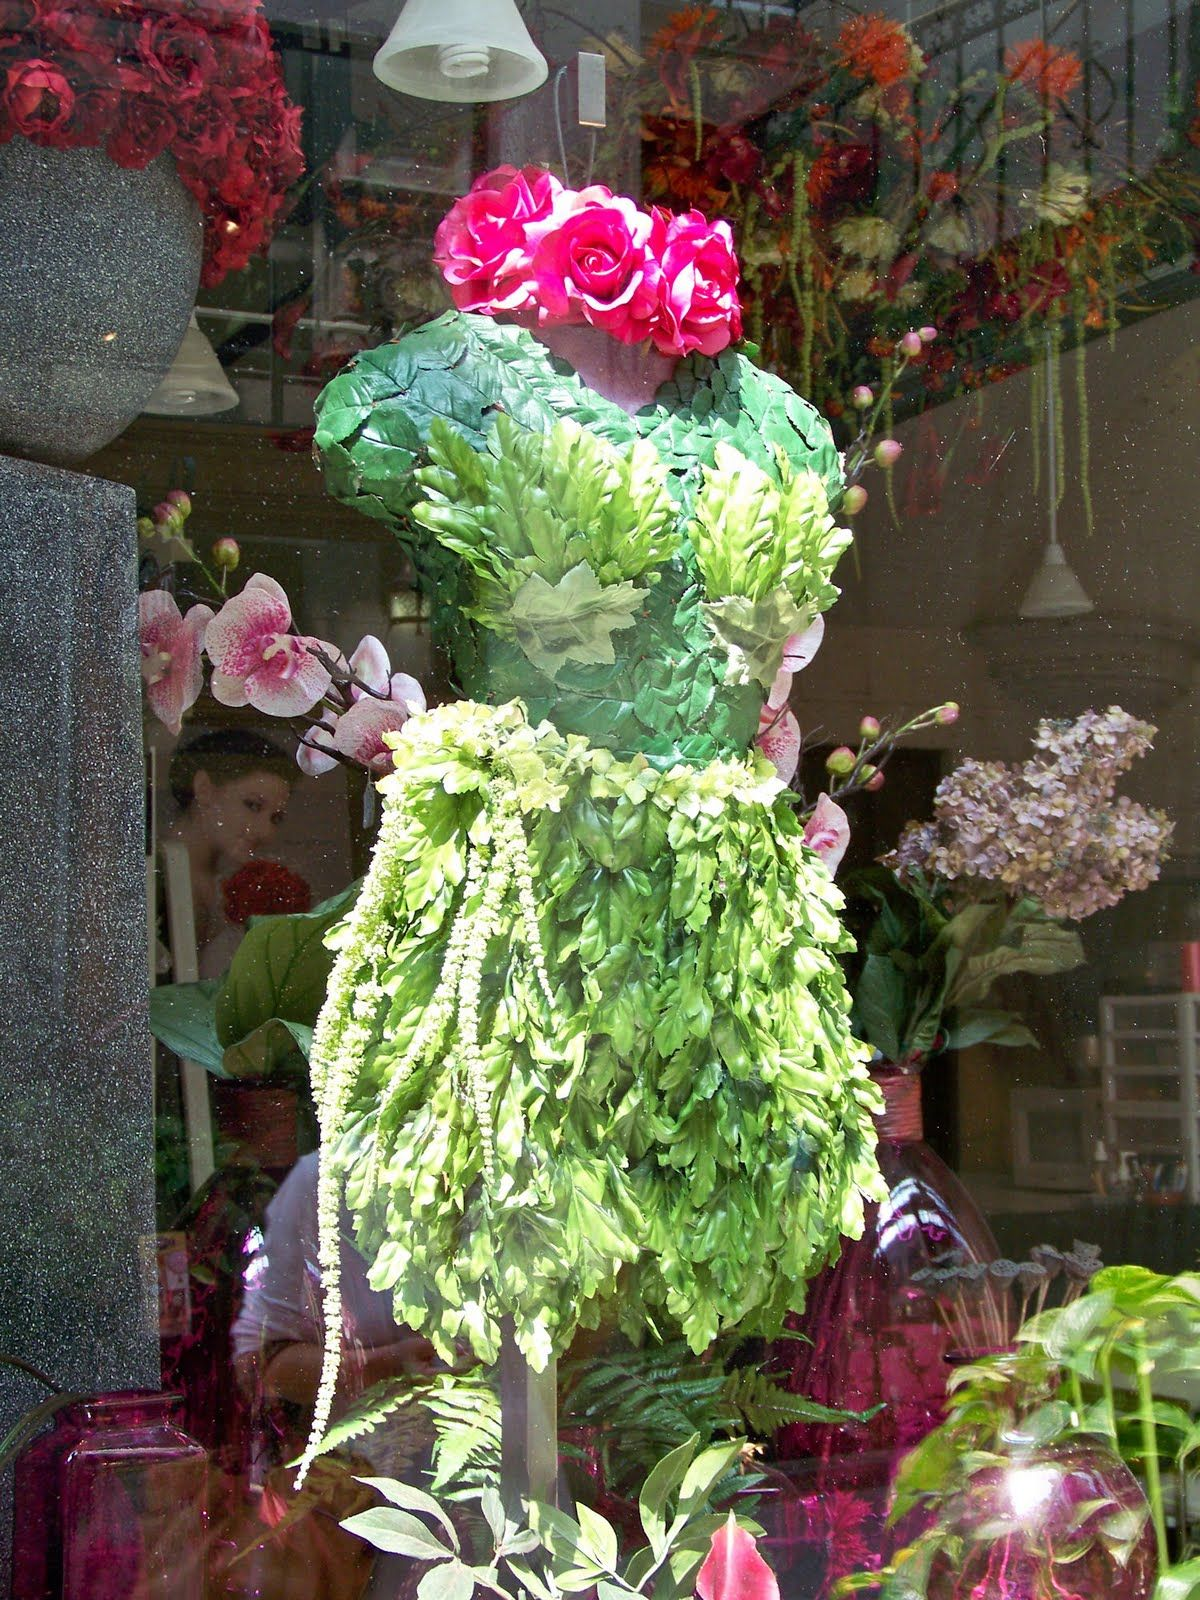 Flower Shop Window Displays The Comforts Of Home Asheville